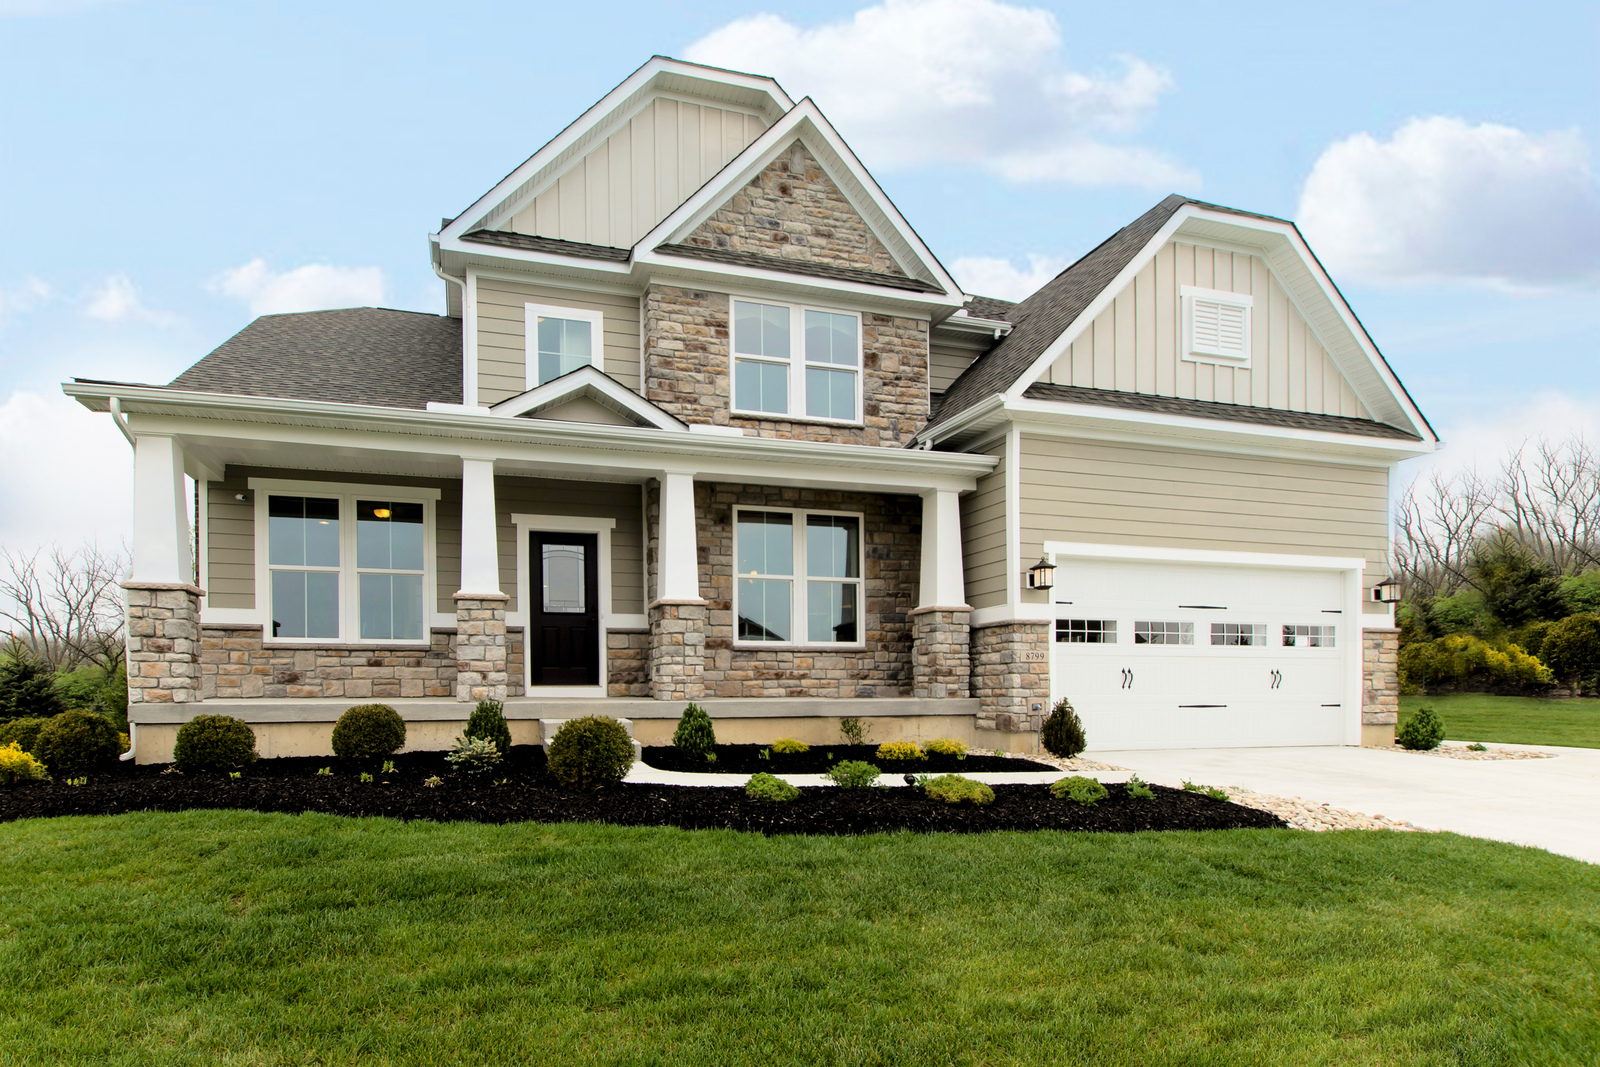 New Homes For Sale At Stonebridge Estates In East Amherst Ny Within The Williamsville School